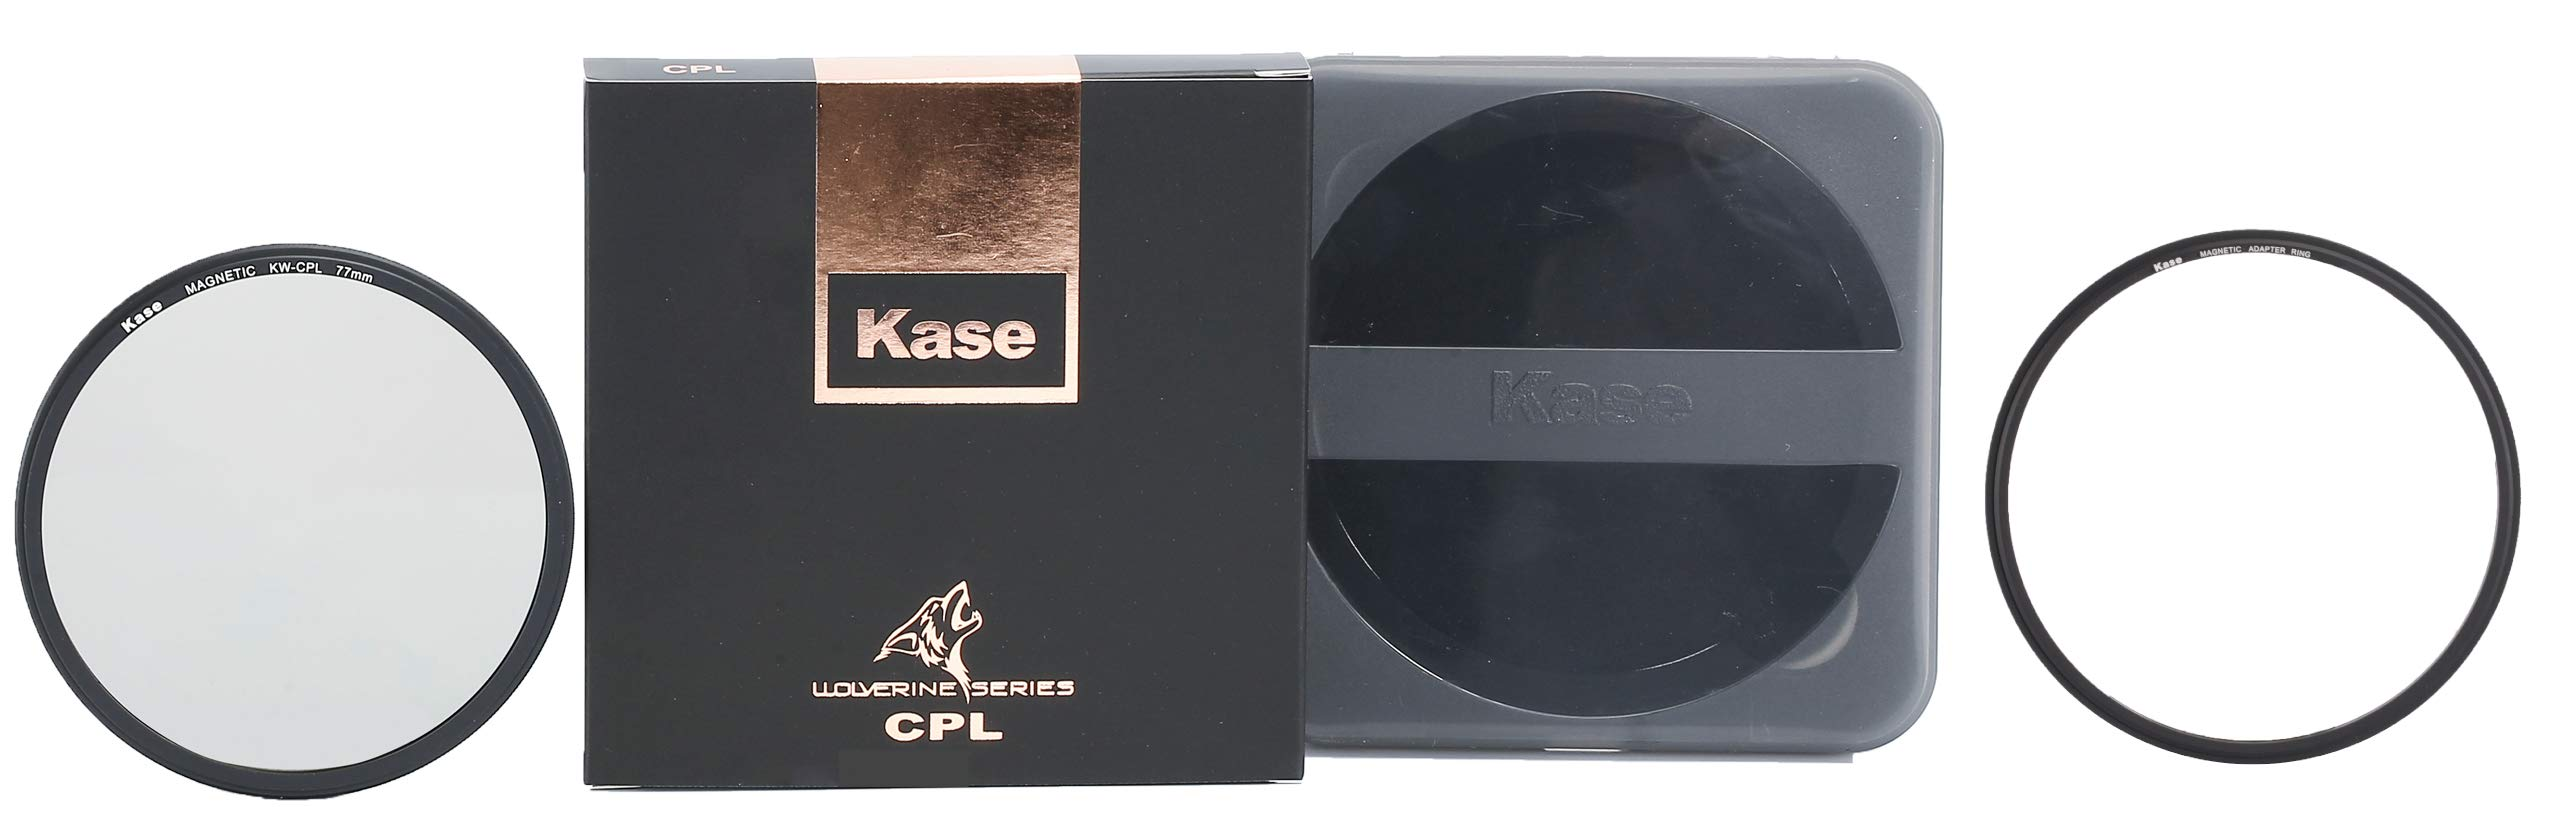 Kase Wolverine 77mm CPL Magnetic Shockproof Tempered Optical Glass Filter Incl Adapter 77 by Kase